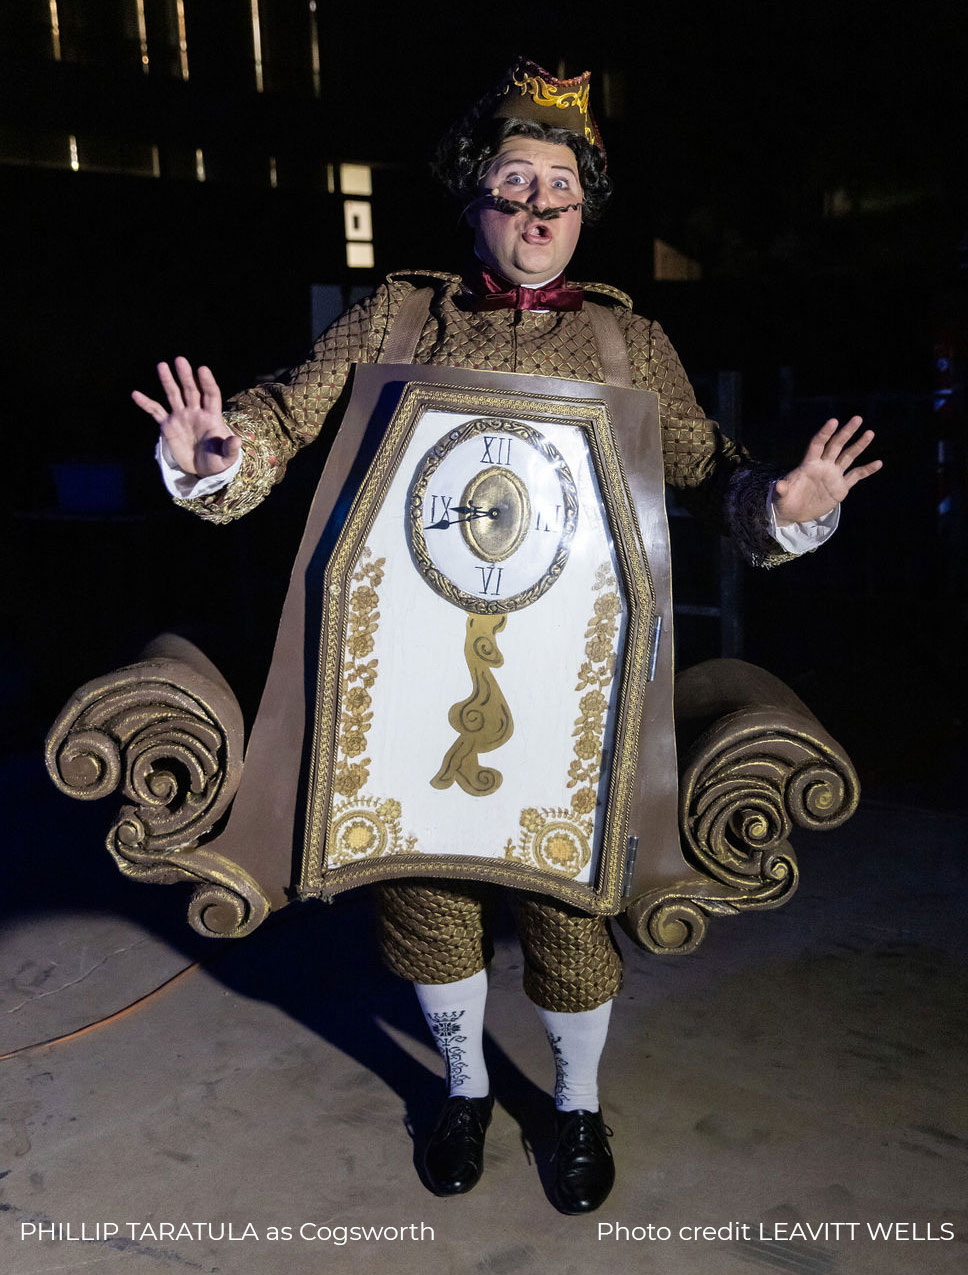 Cogsworth backstage waiting for cue